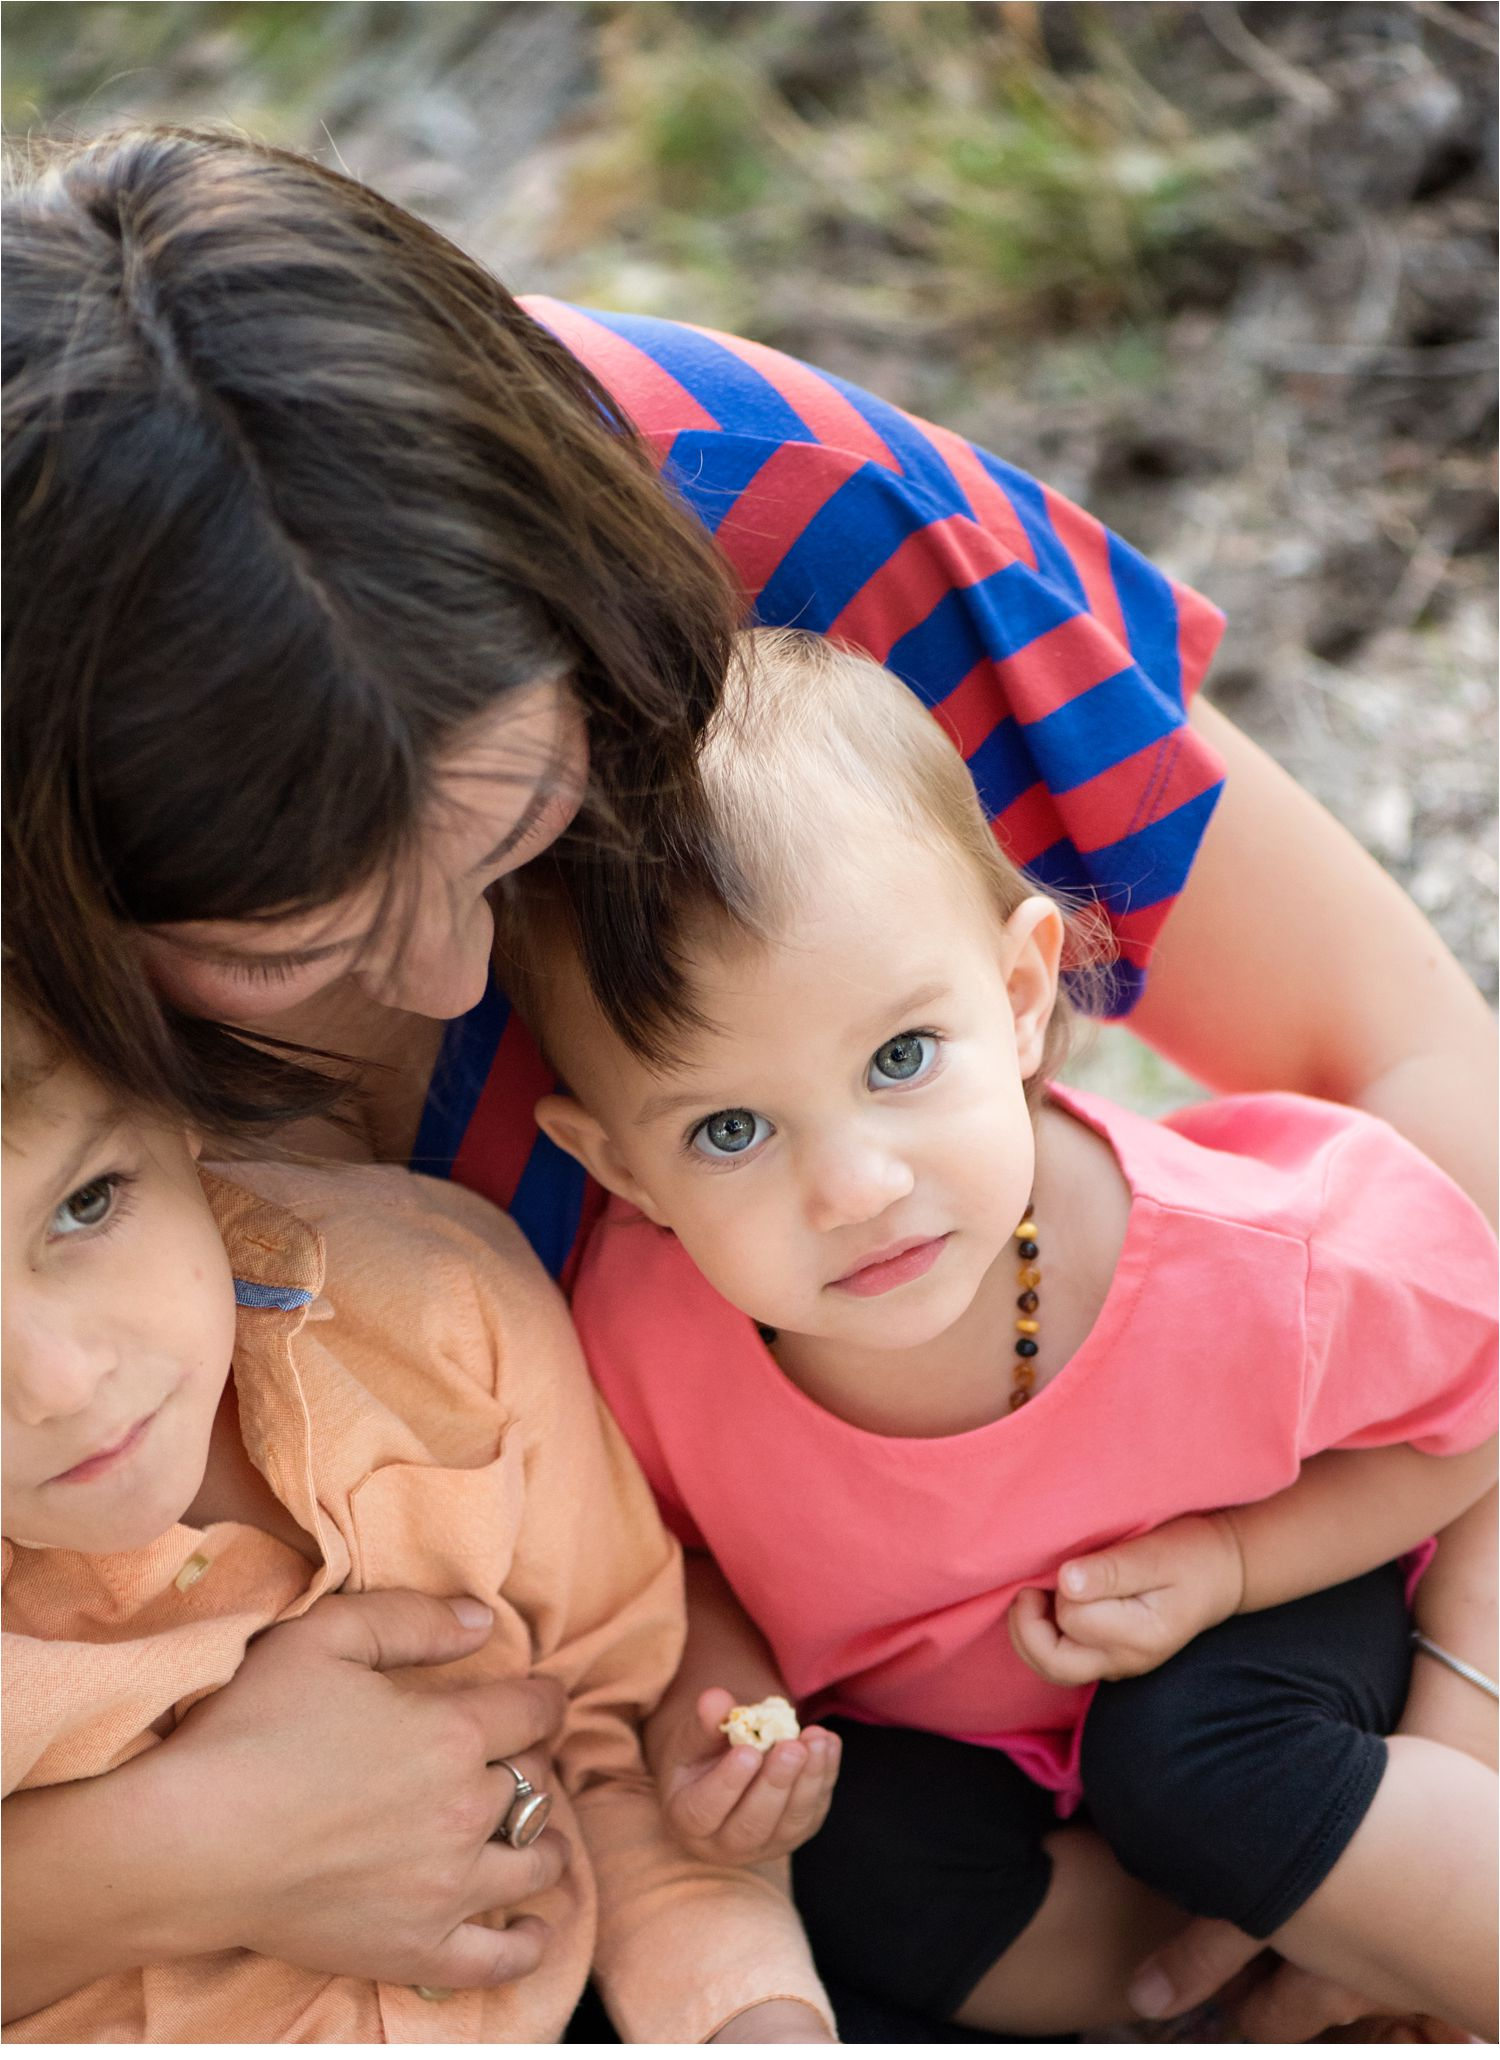 Bec-Stewart-Family-and-children-Lifestyle-Photographer-city-of-casey-melbourne-7.jpg